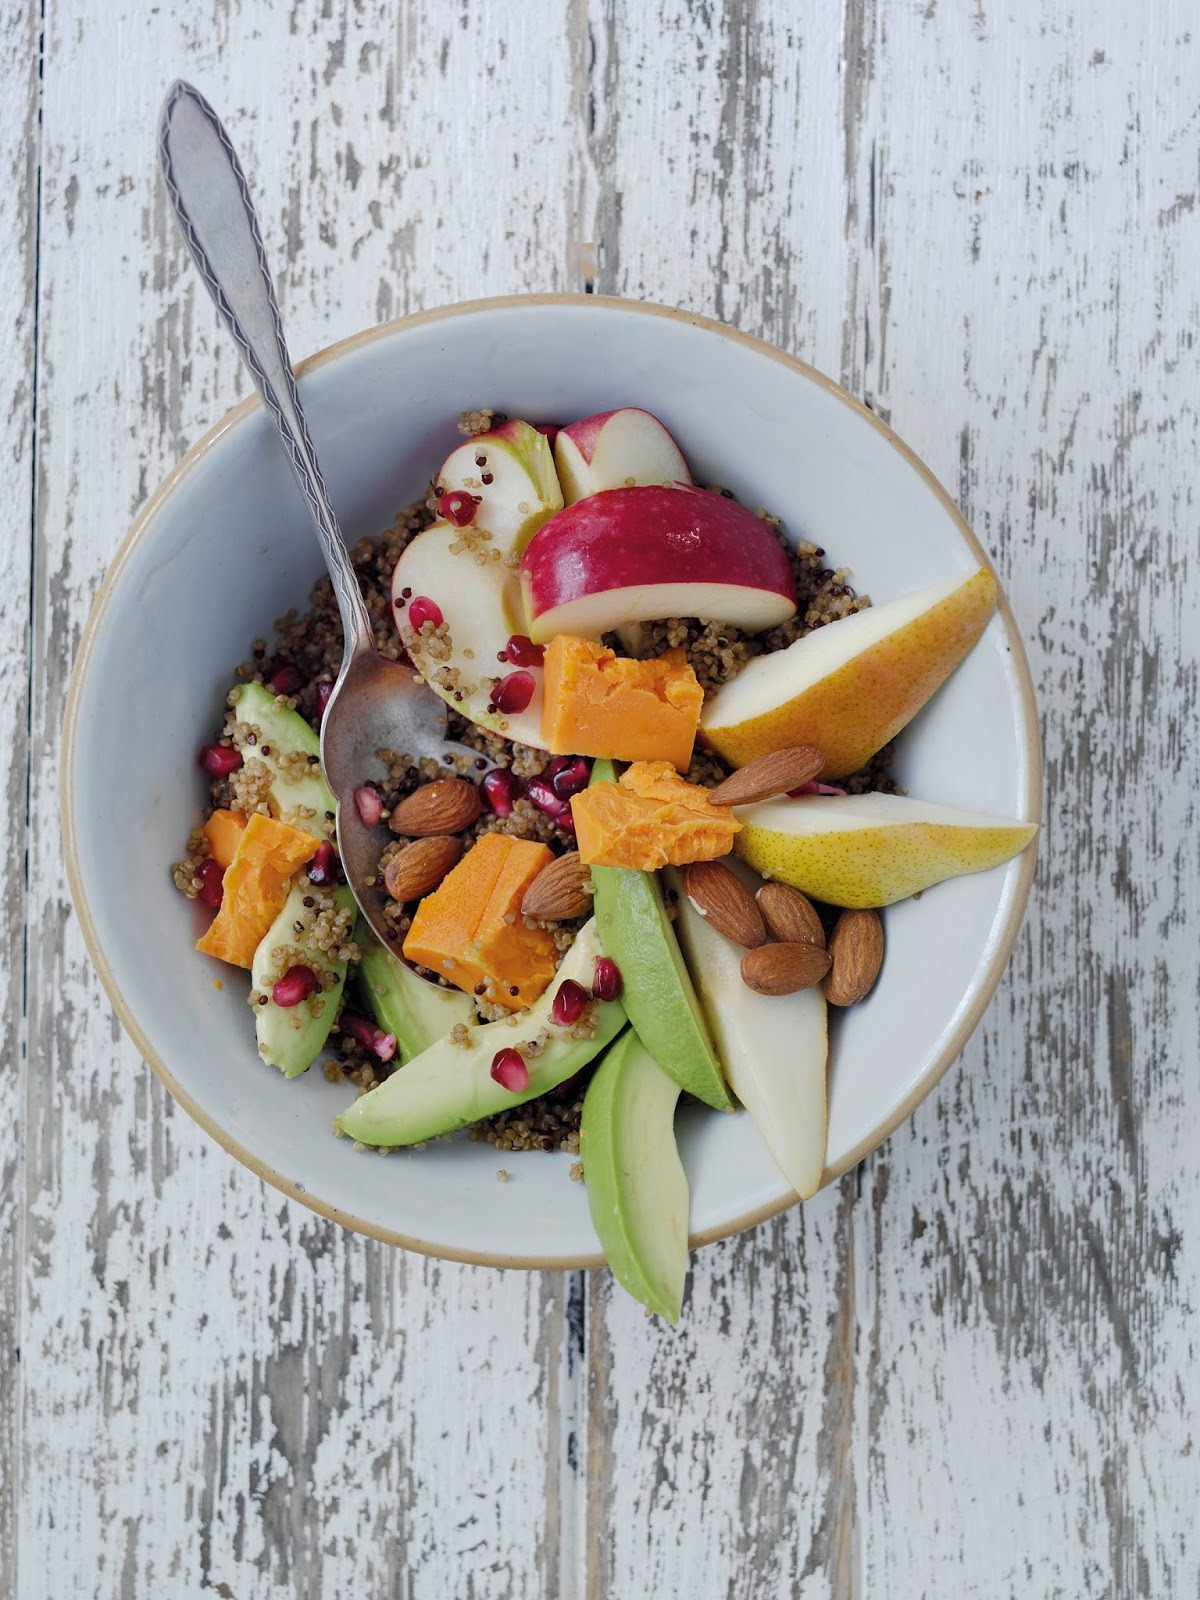 How To Make A South African Energy Bowl